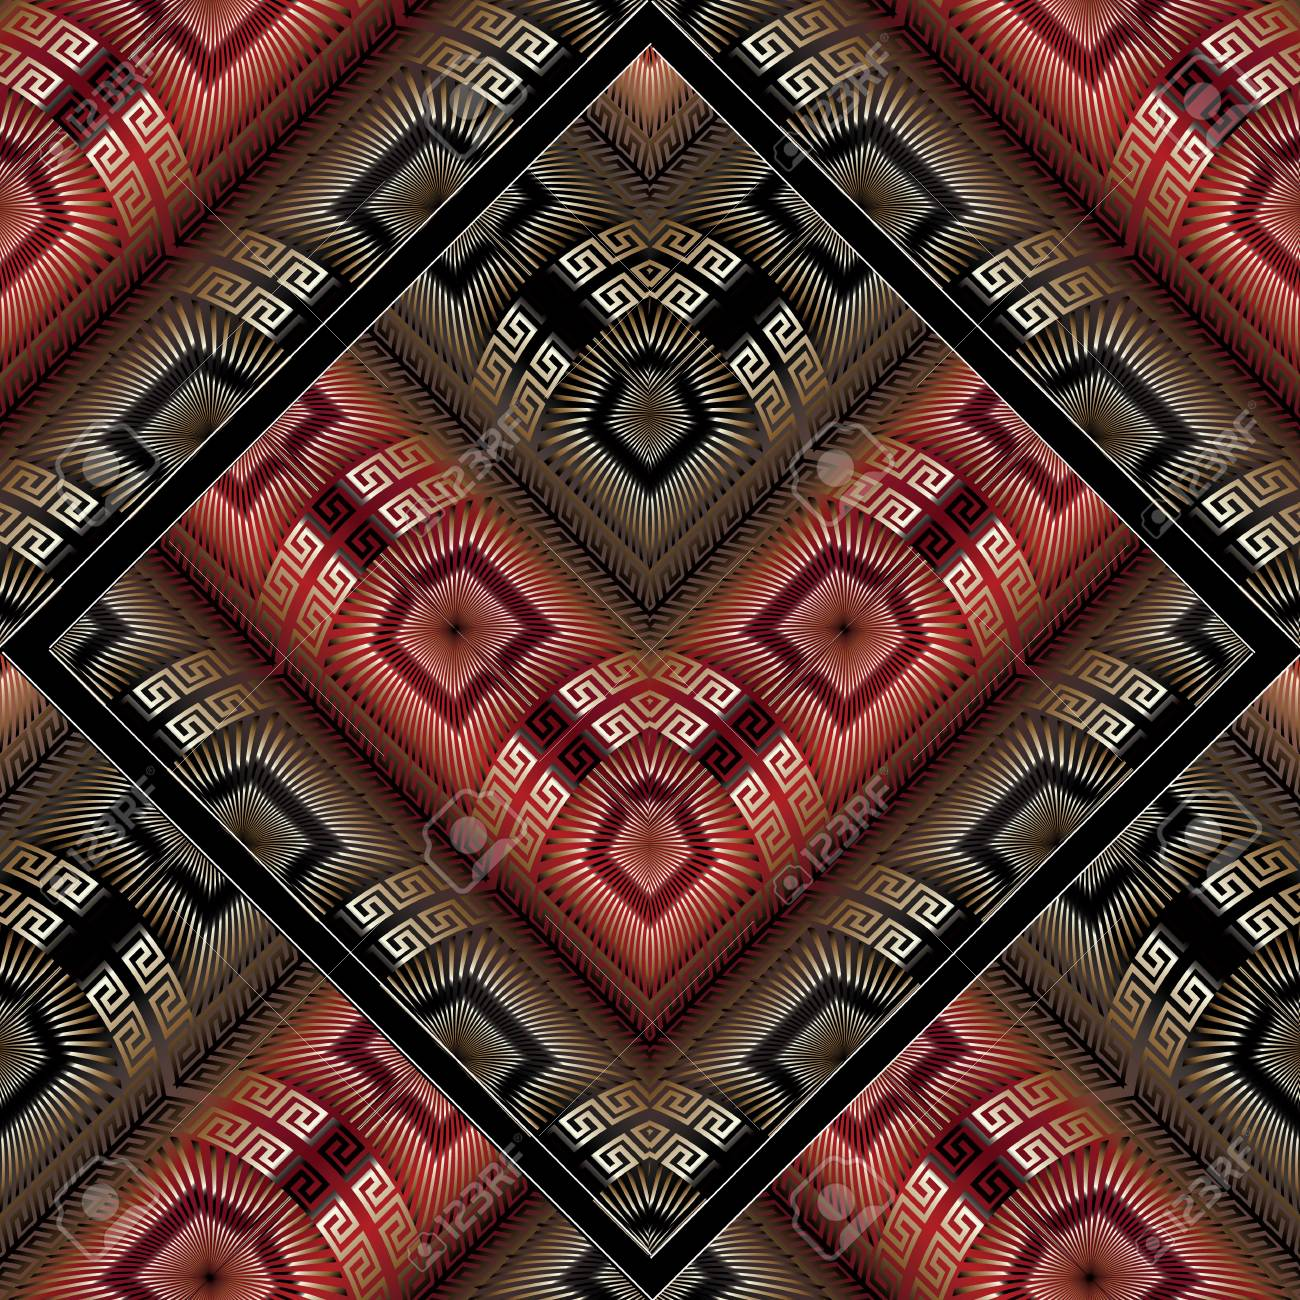 Abstract Meander Vector Seamless Pattern Modern Black Red Gold Greek Key Background 3d Wallpaper